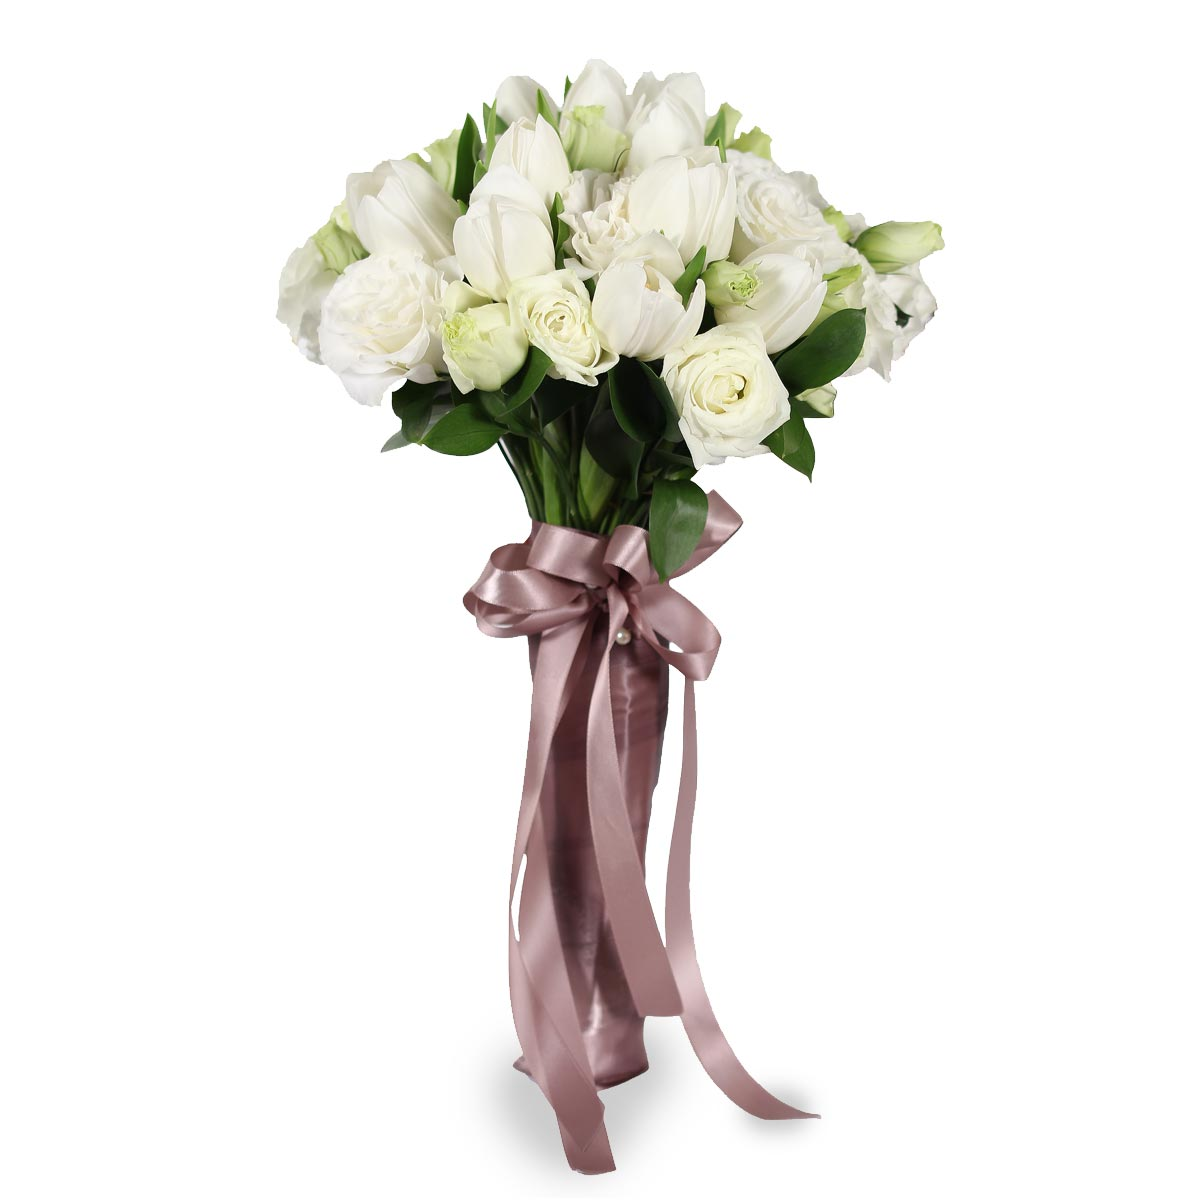 WB1619 white bridal bouquet